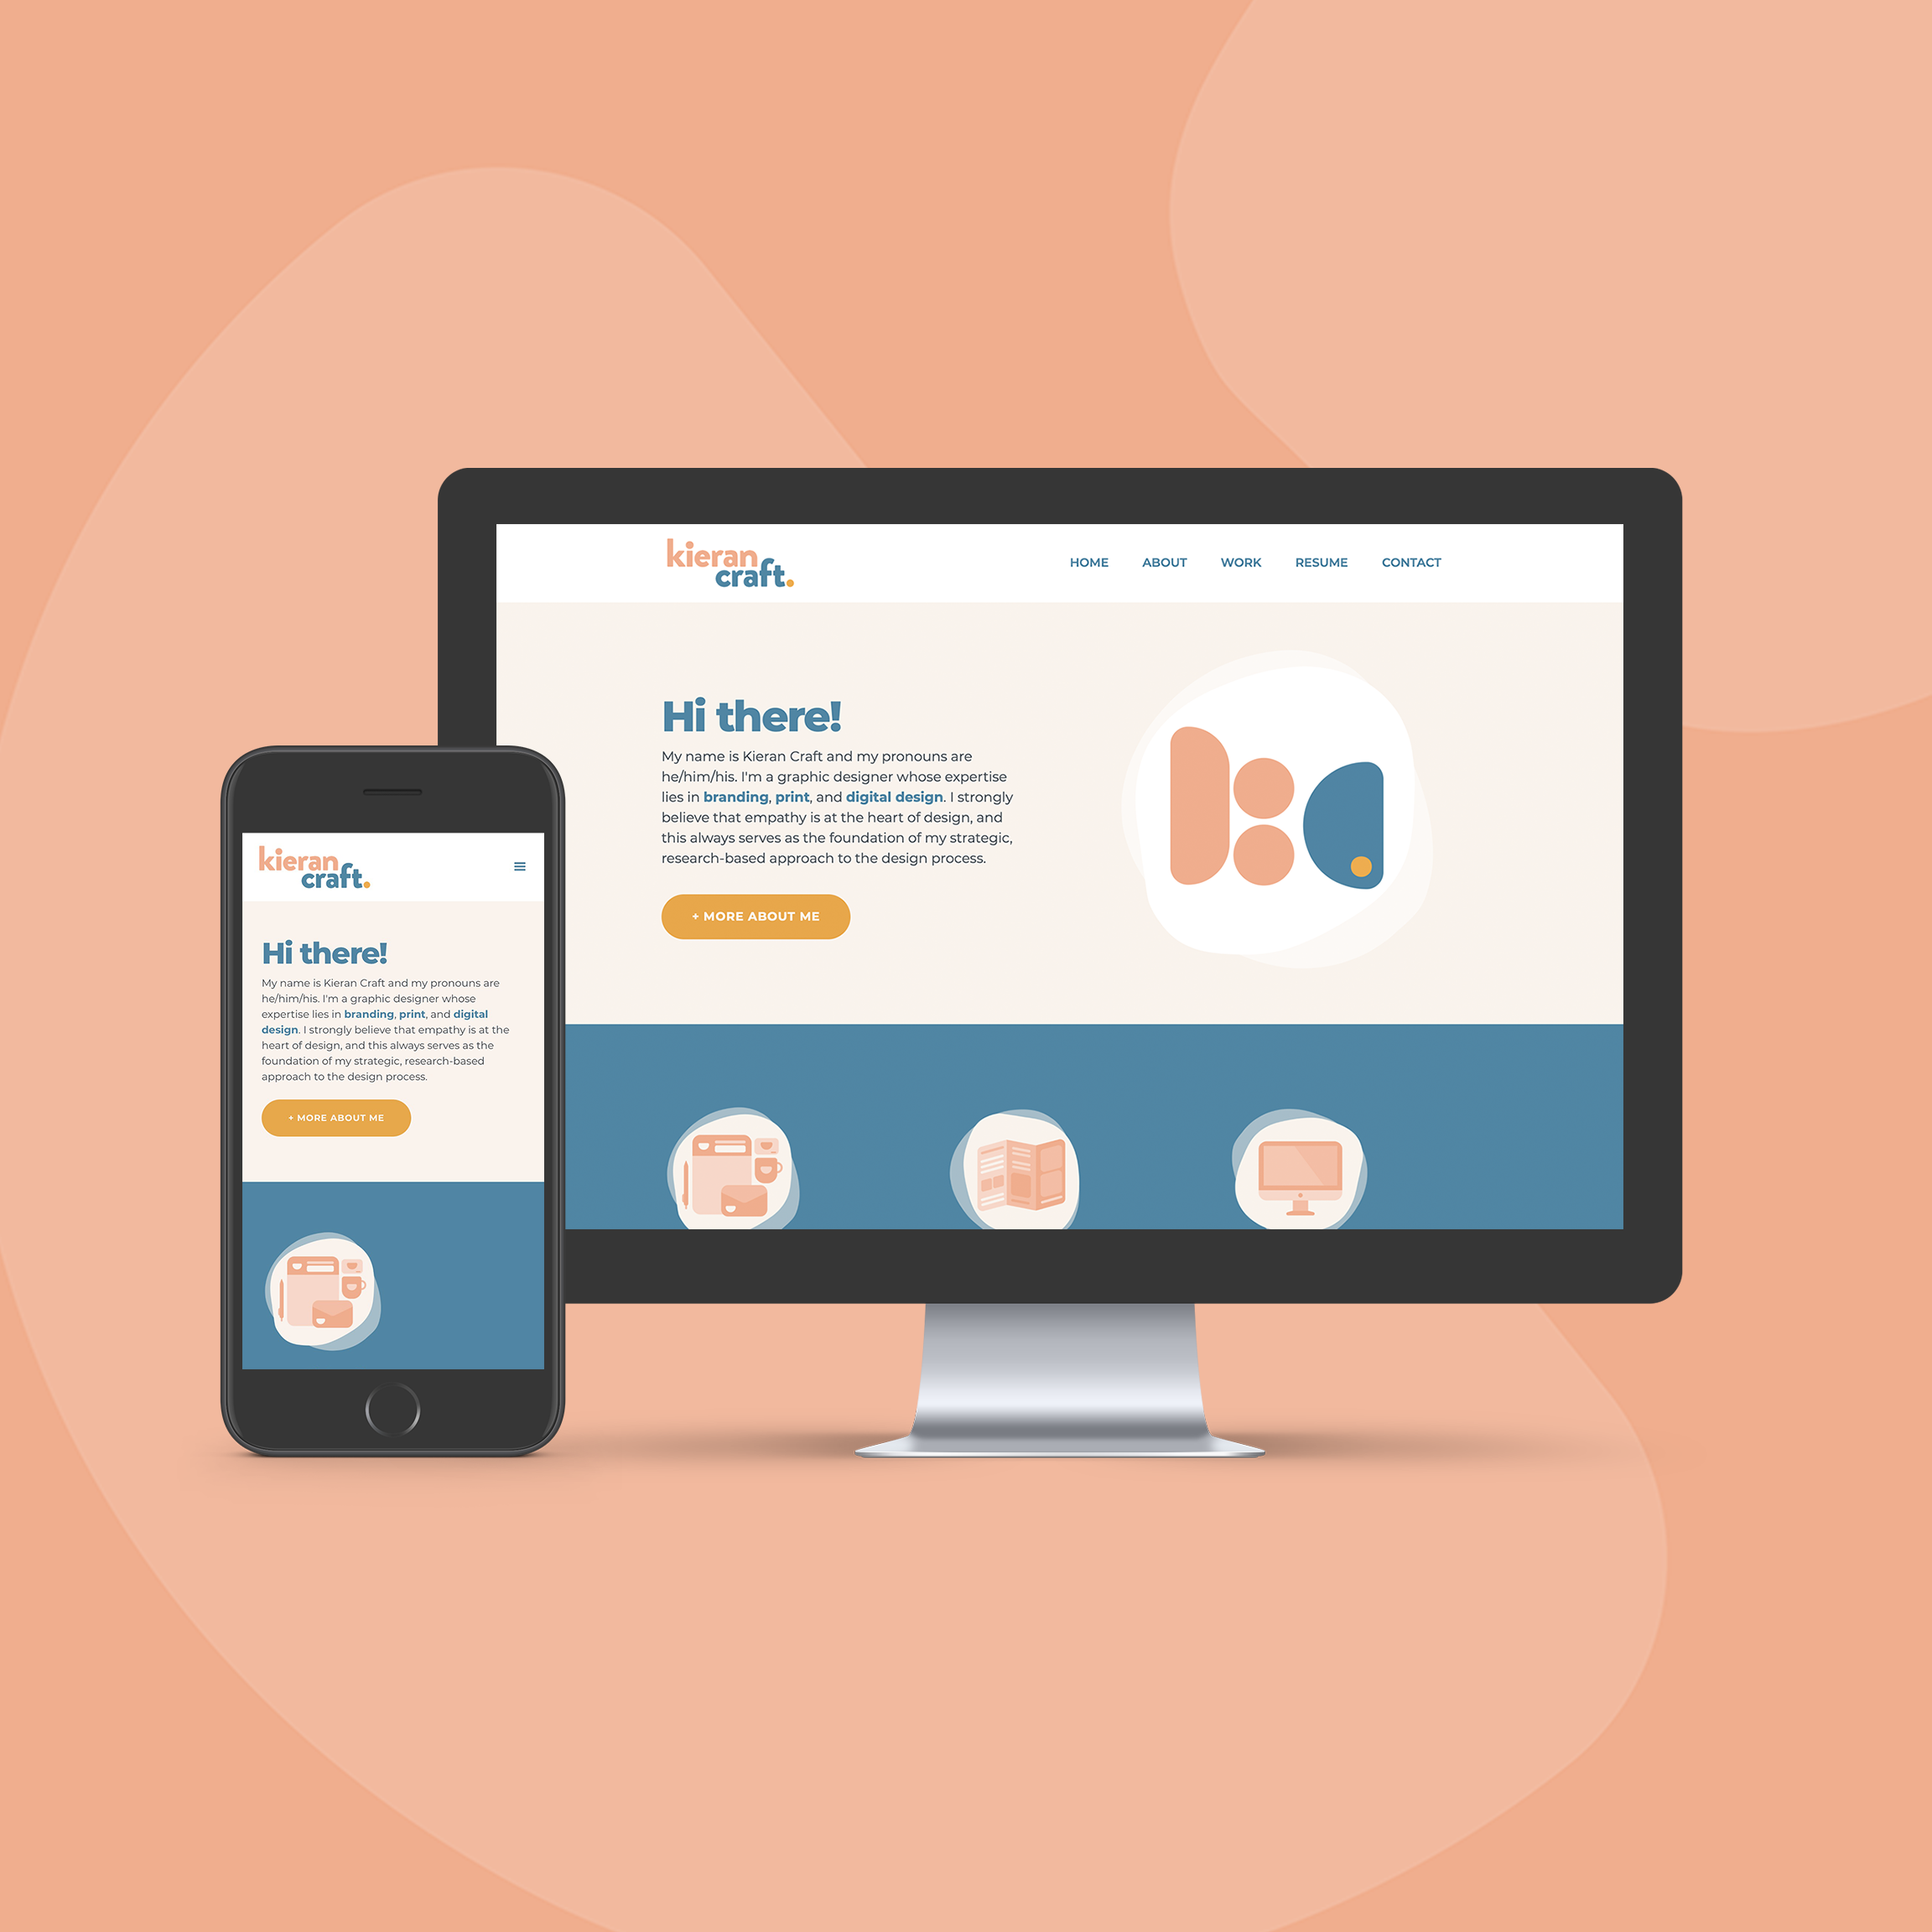 An Instagram post with a salmon-colored background that features rounded shapes in a slightly lighter color. Over the background is phone and laptop mockup that displays KieranCraft.com.